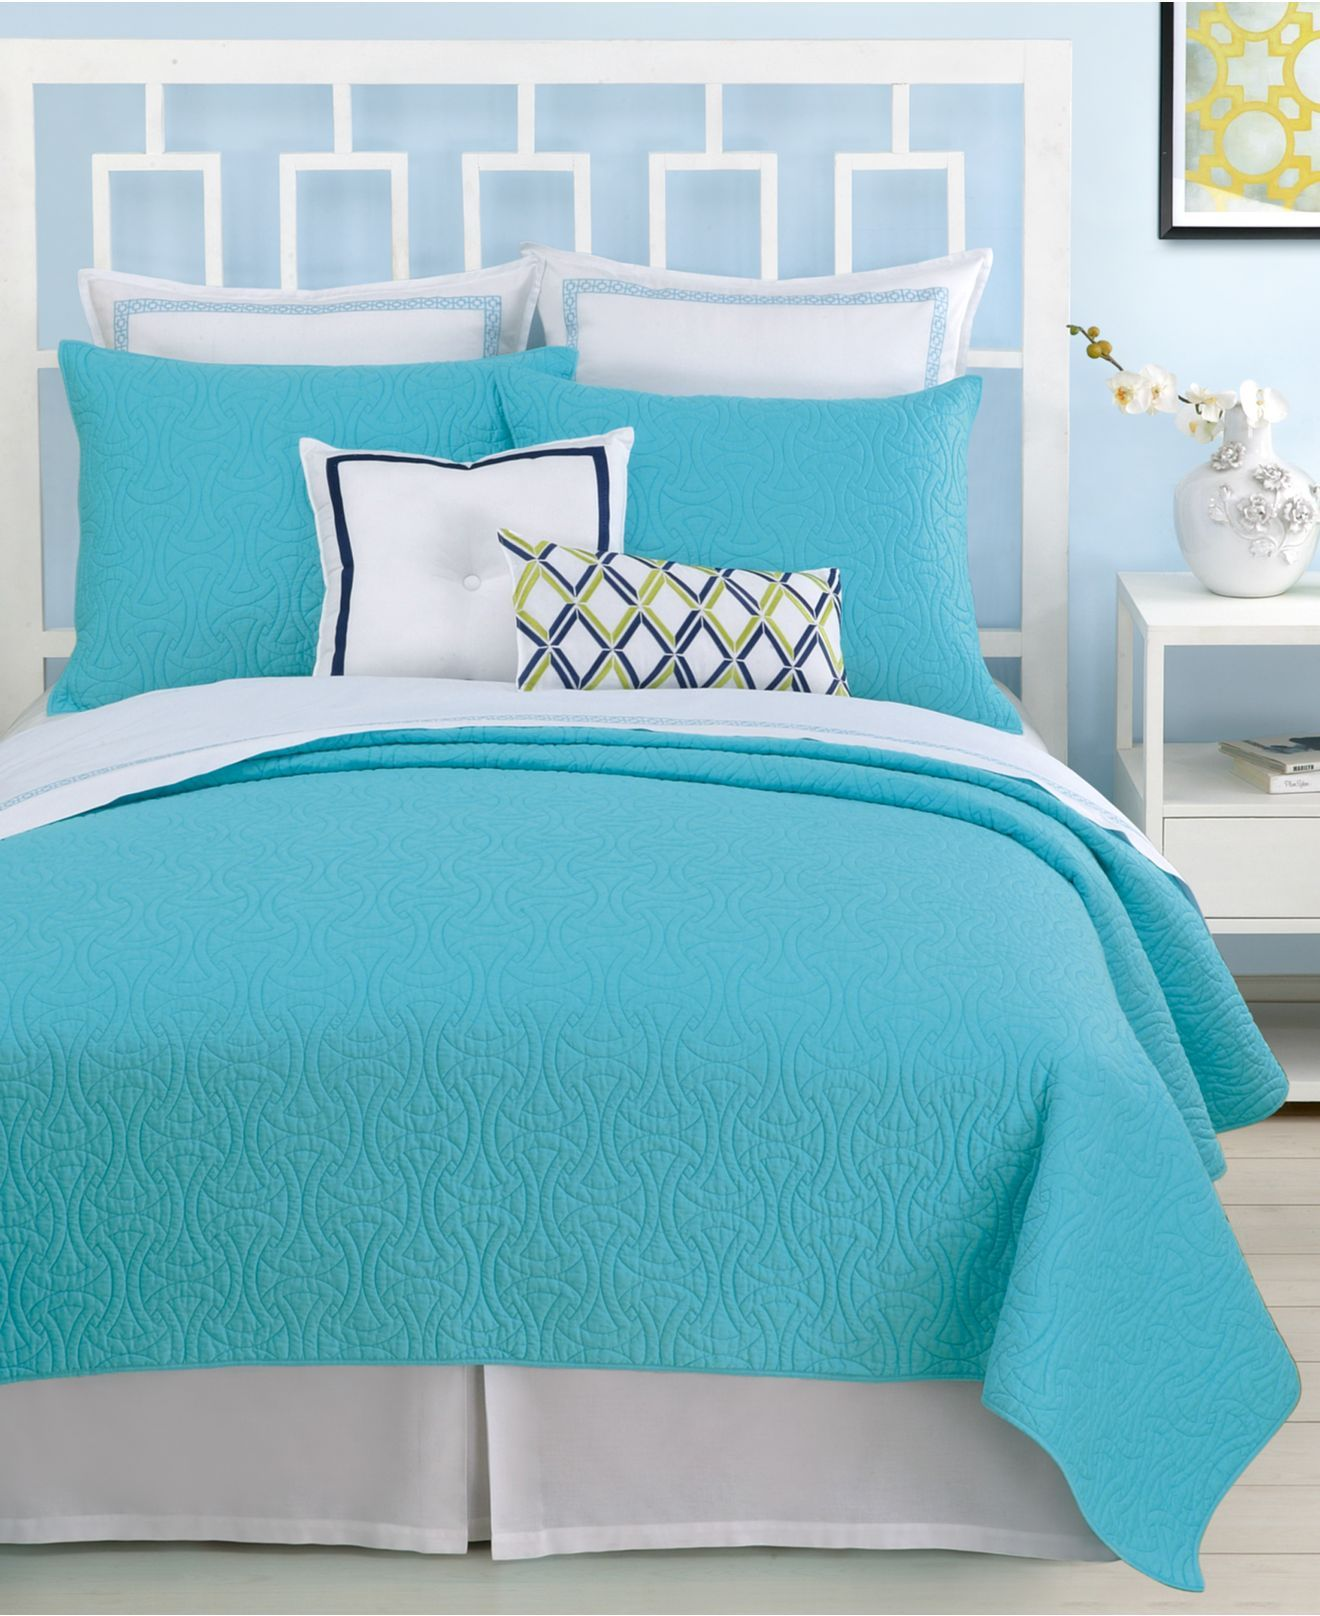 Trina Turk Bedding Santorini Turquoise Collection Quilts